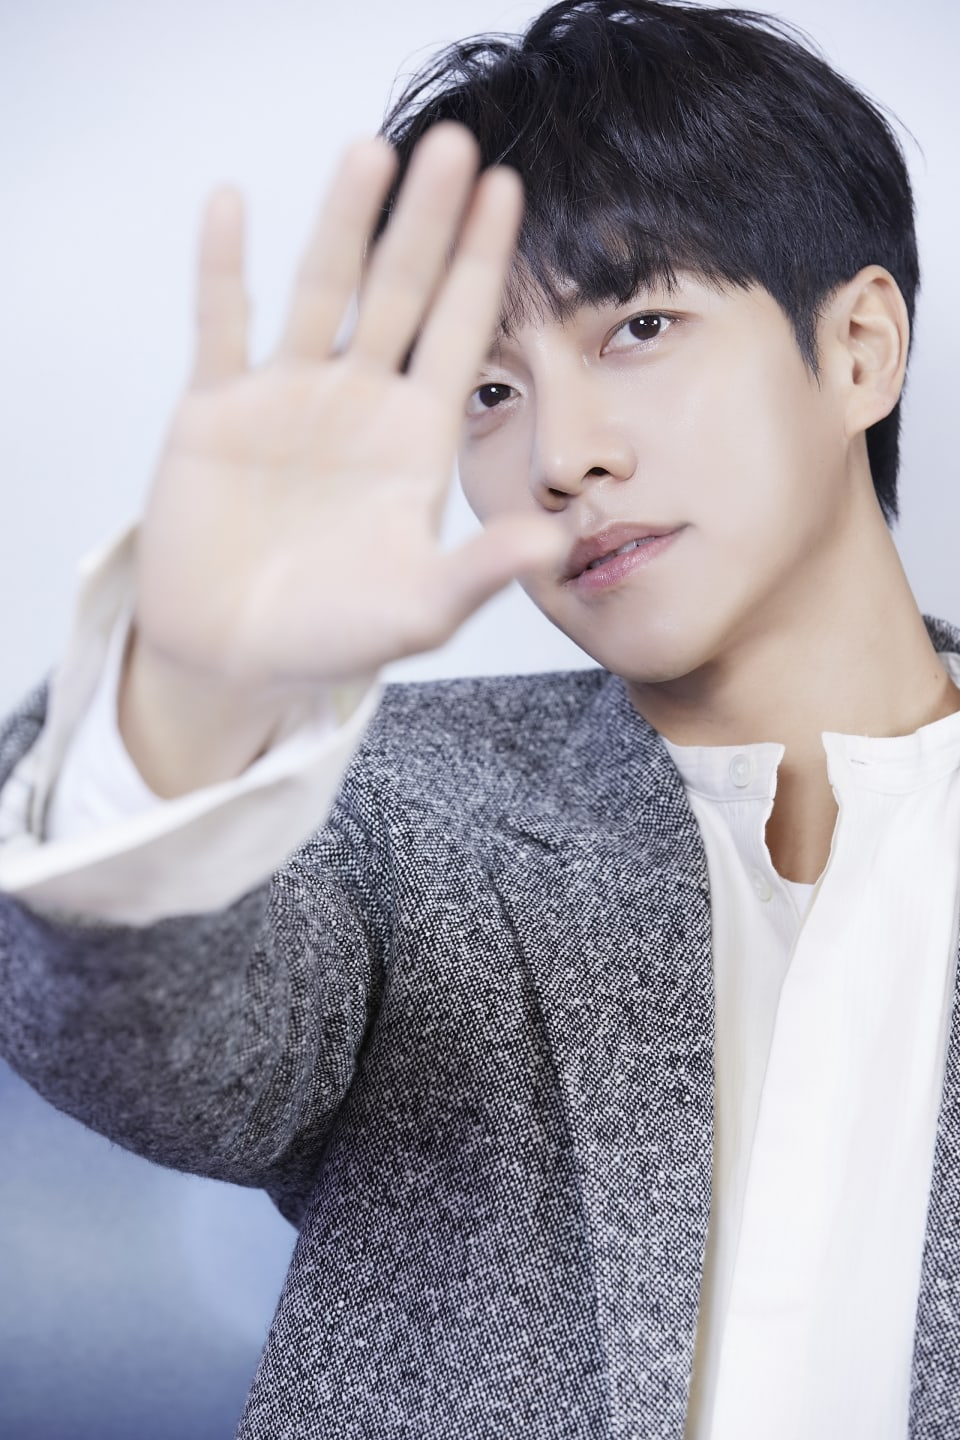 Lee Seung Gi talked about a return with his seventh studio album!